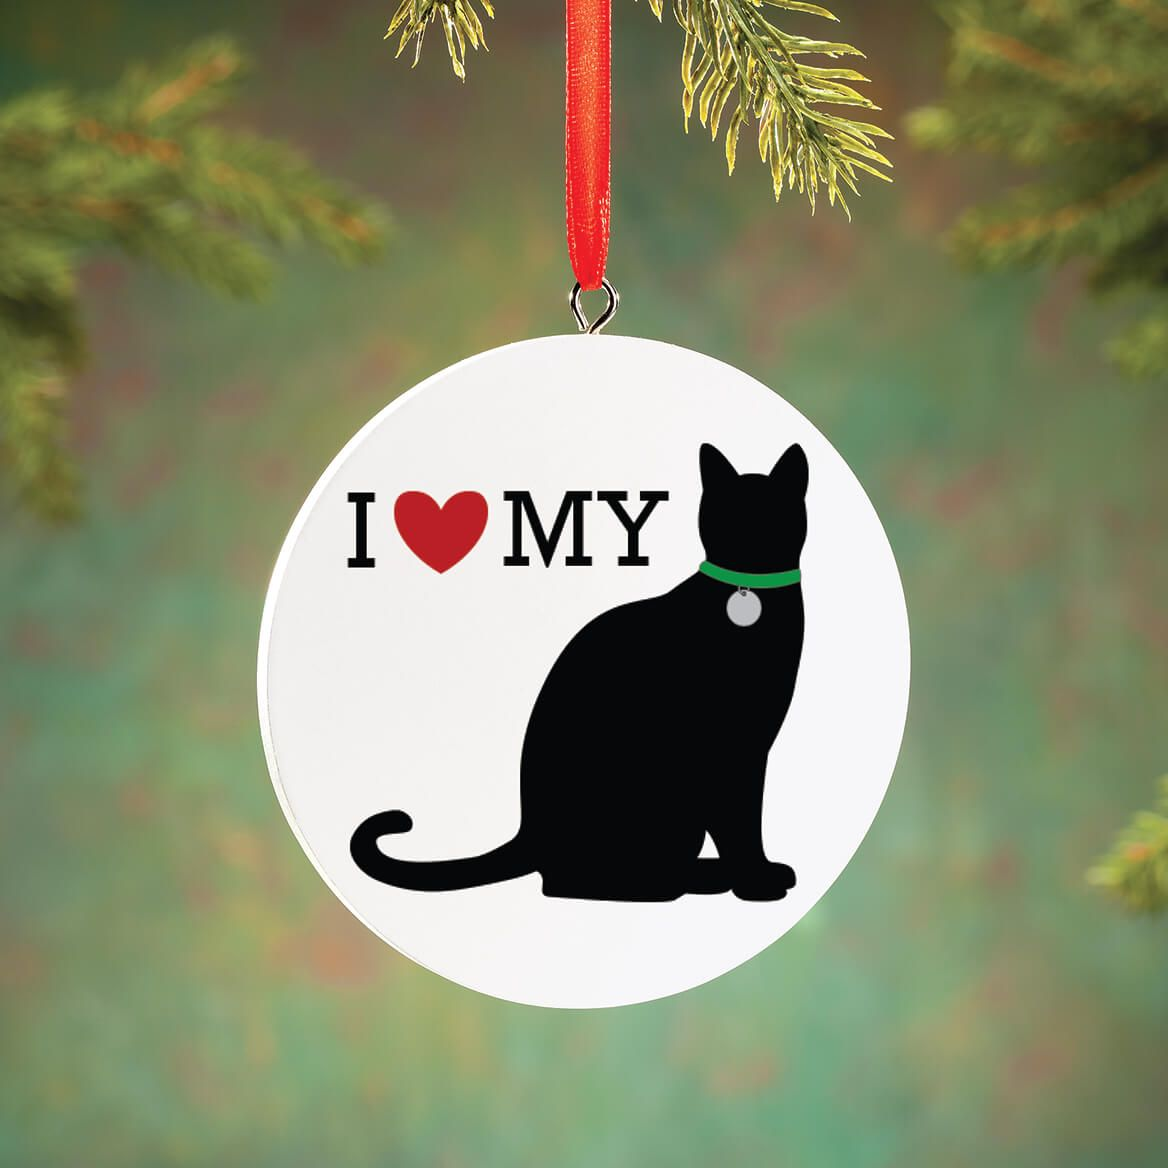 Personalized I Love My Cat Ornament-372728